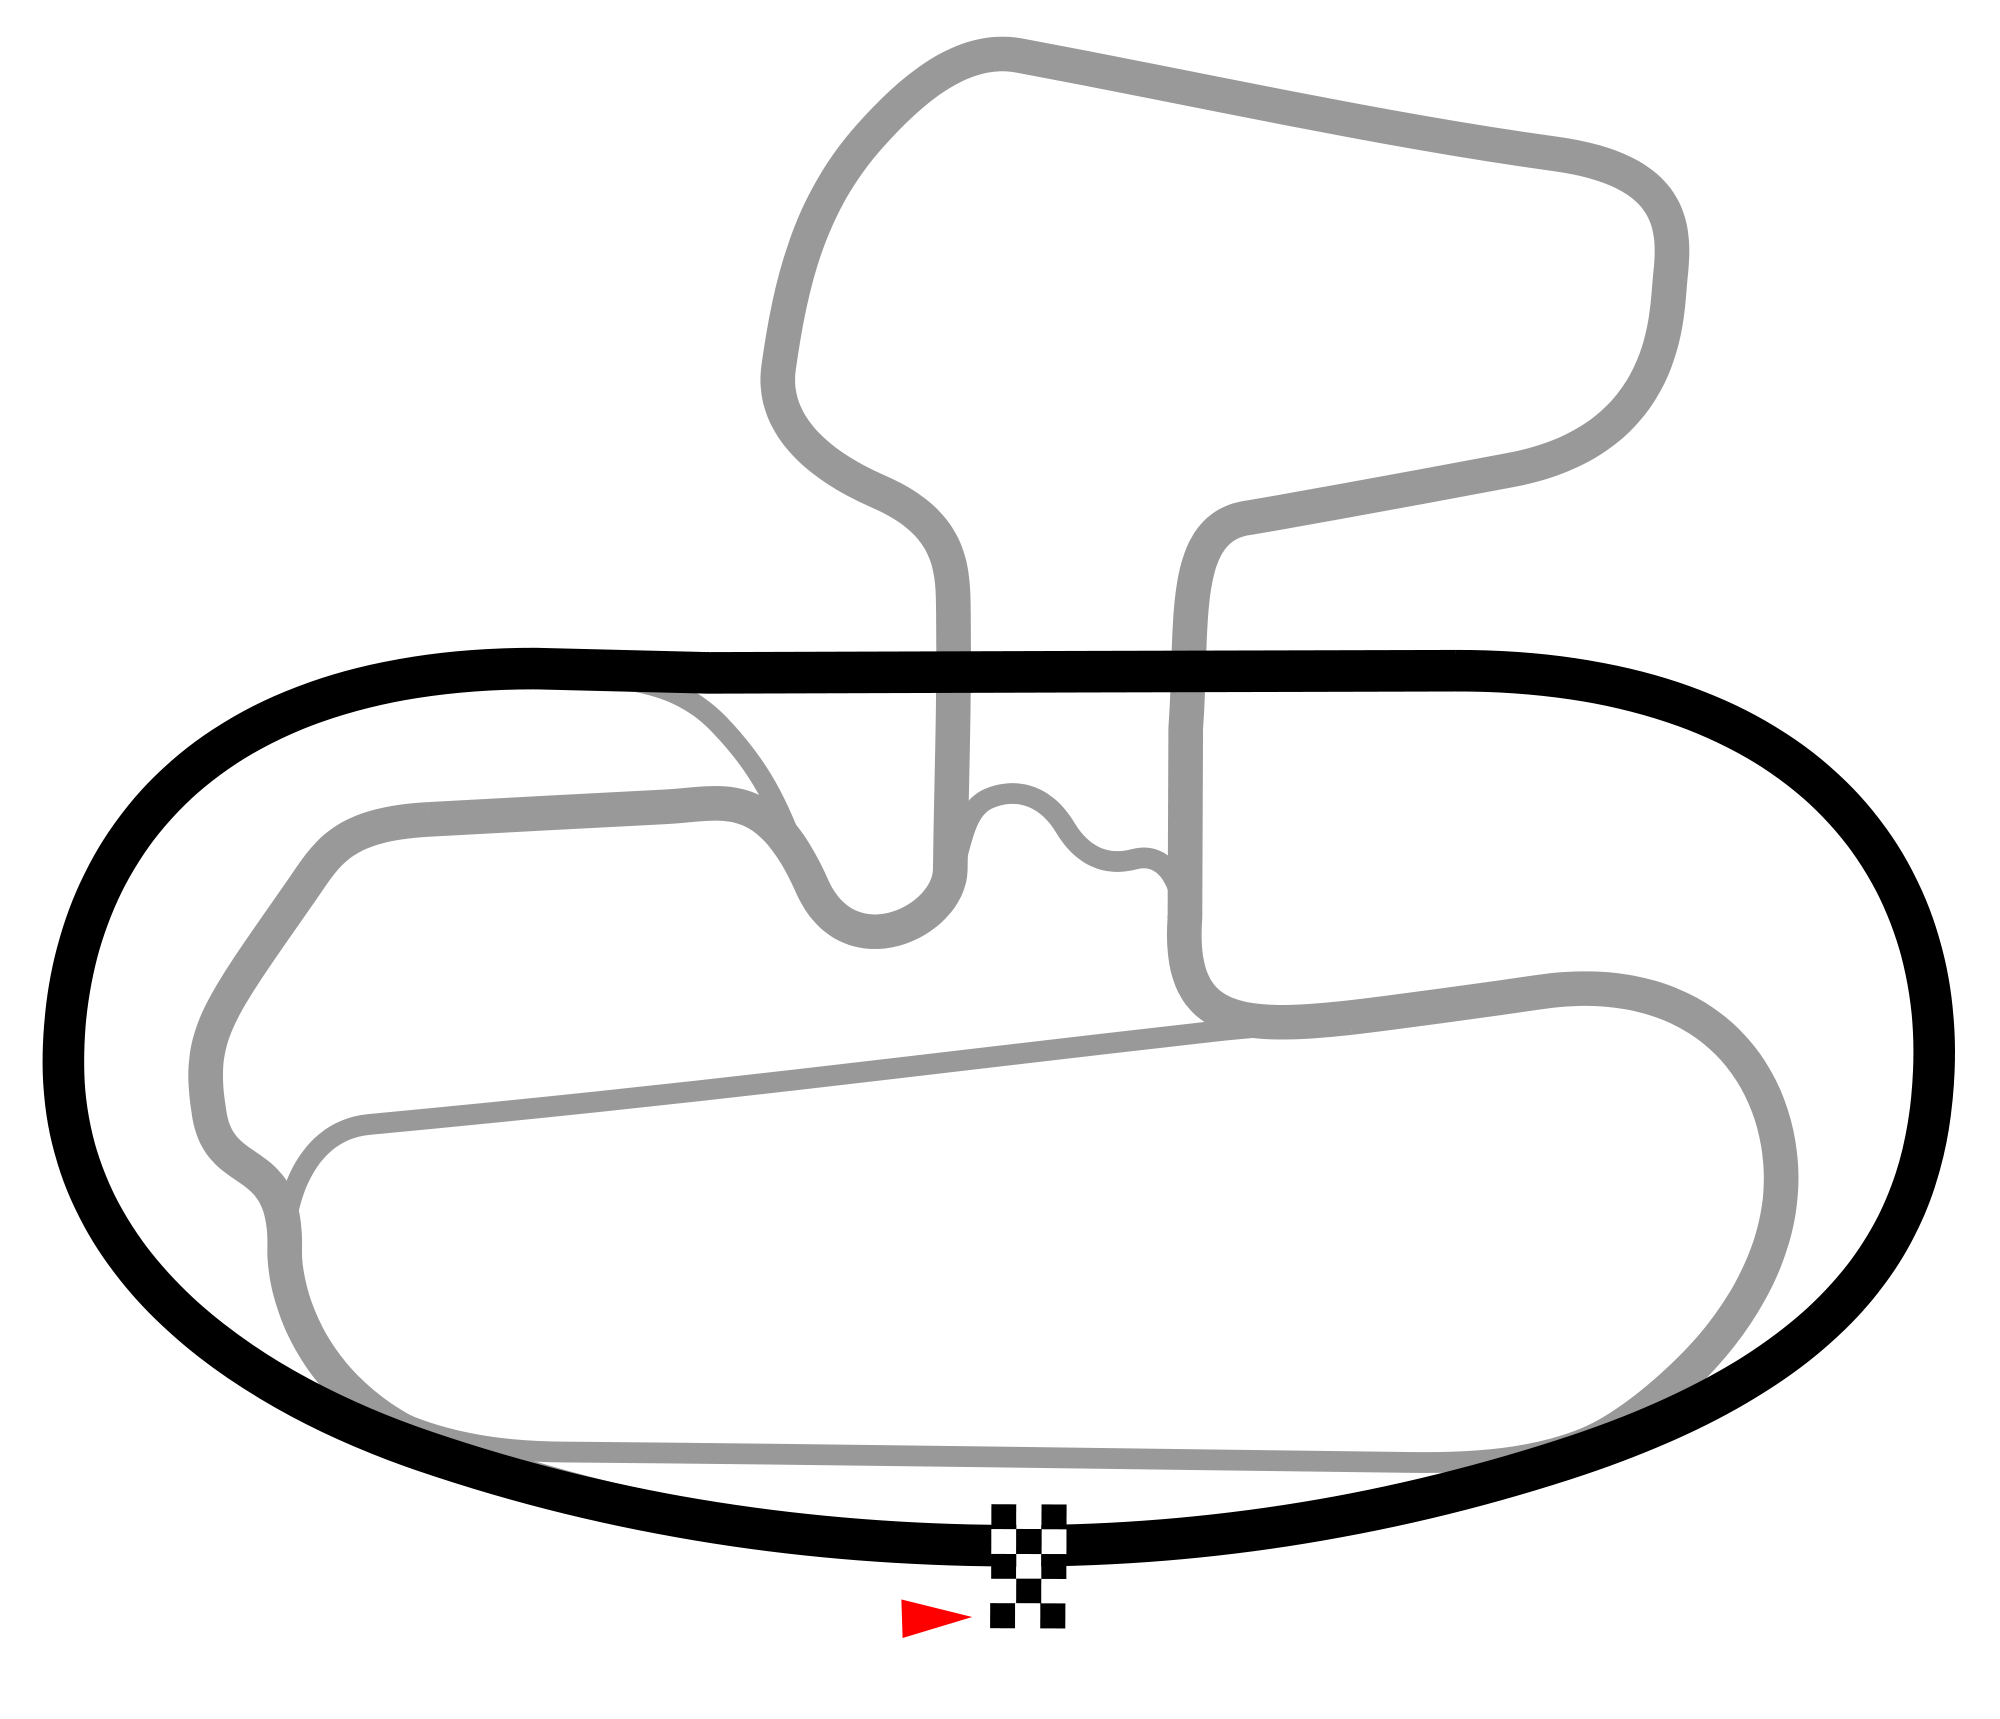 Alamo vector texas drawing. File world speedway superspeedway